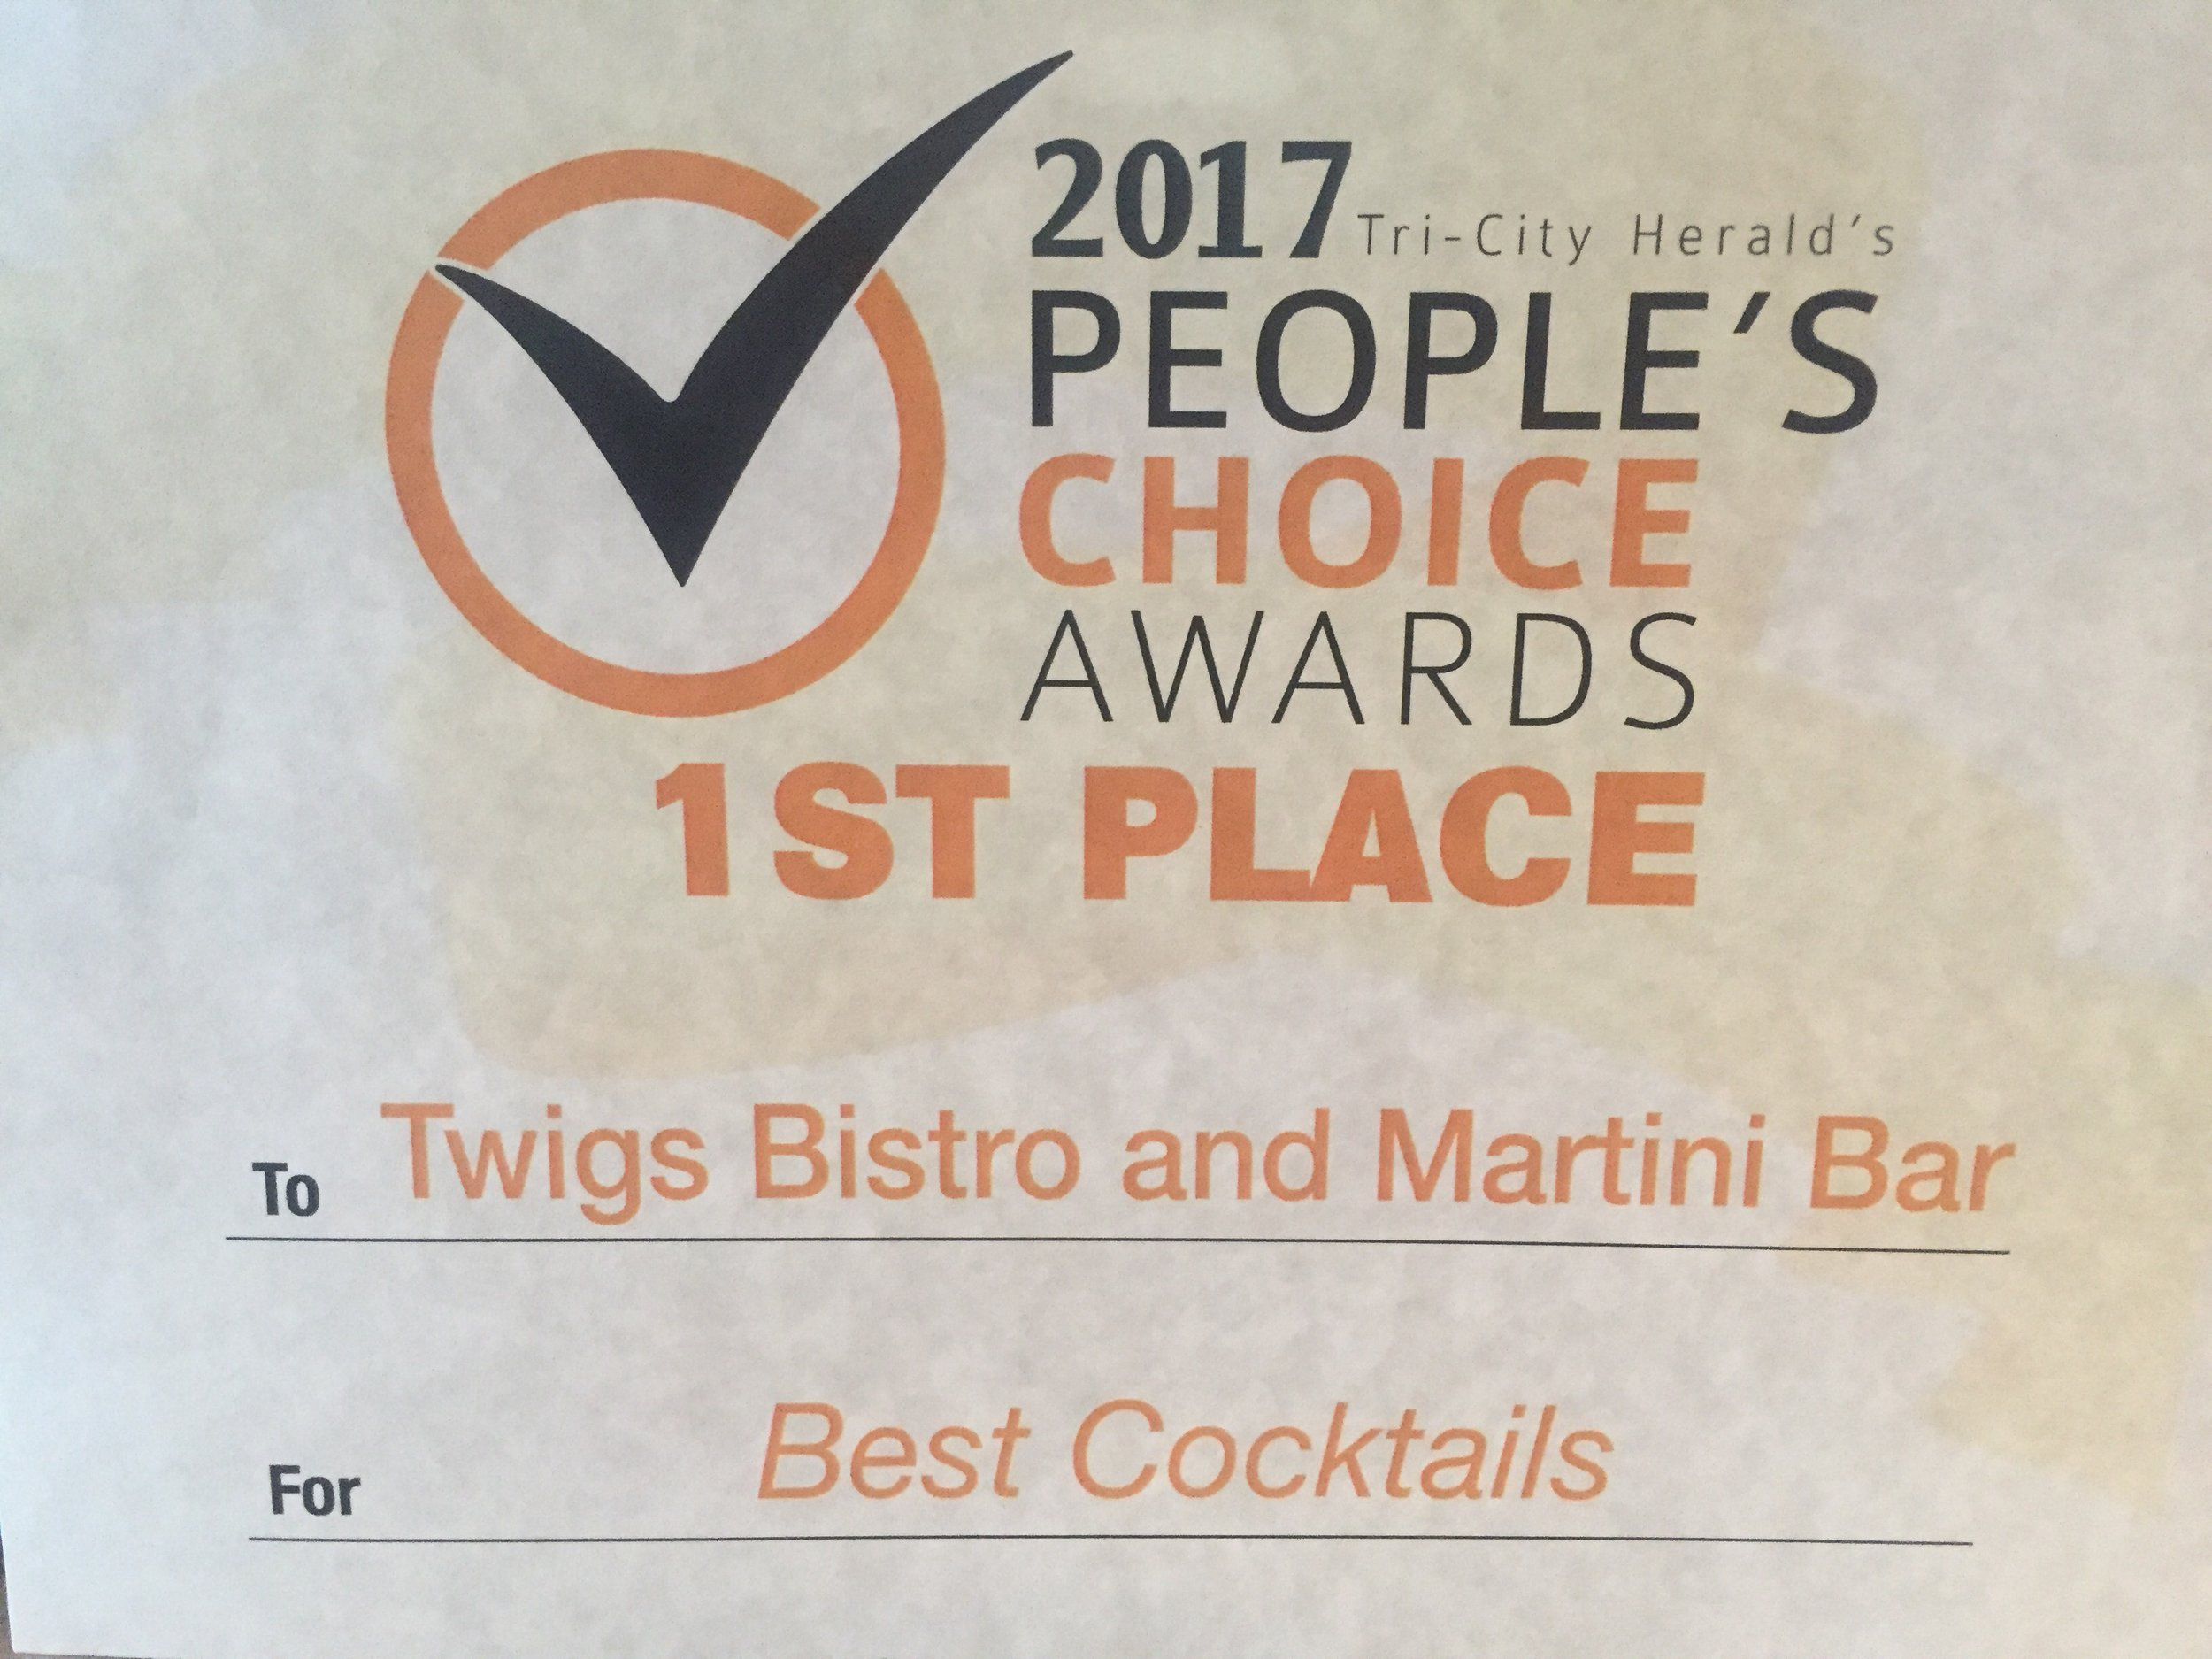 Twigs at Columbia Center Mall is proud to be voted Best Cocktails by the TriCity Herald readers for 2017. Read the full article here:  http://www.tri-cityherald.com/customer-service/faq/readers-choice/article151147197.html